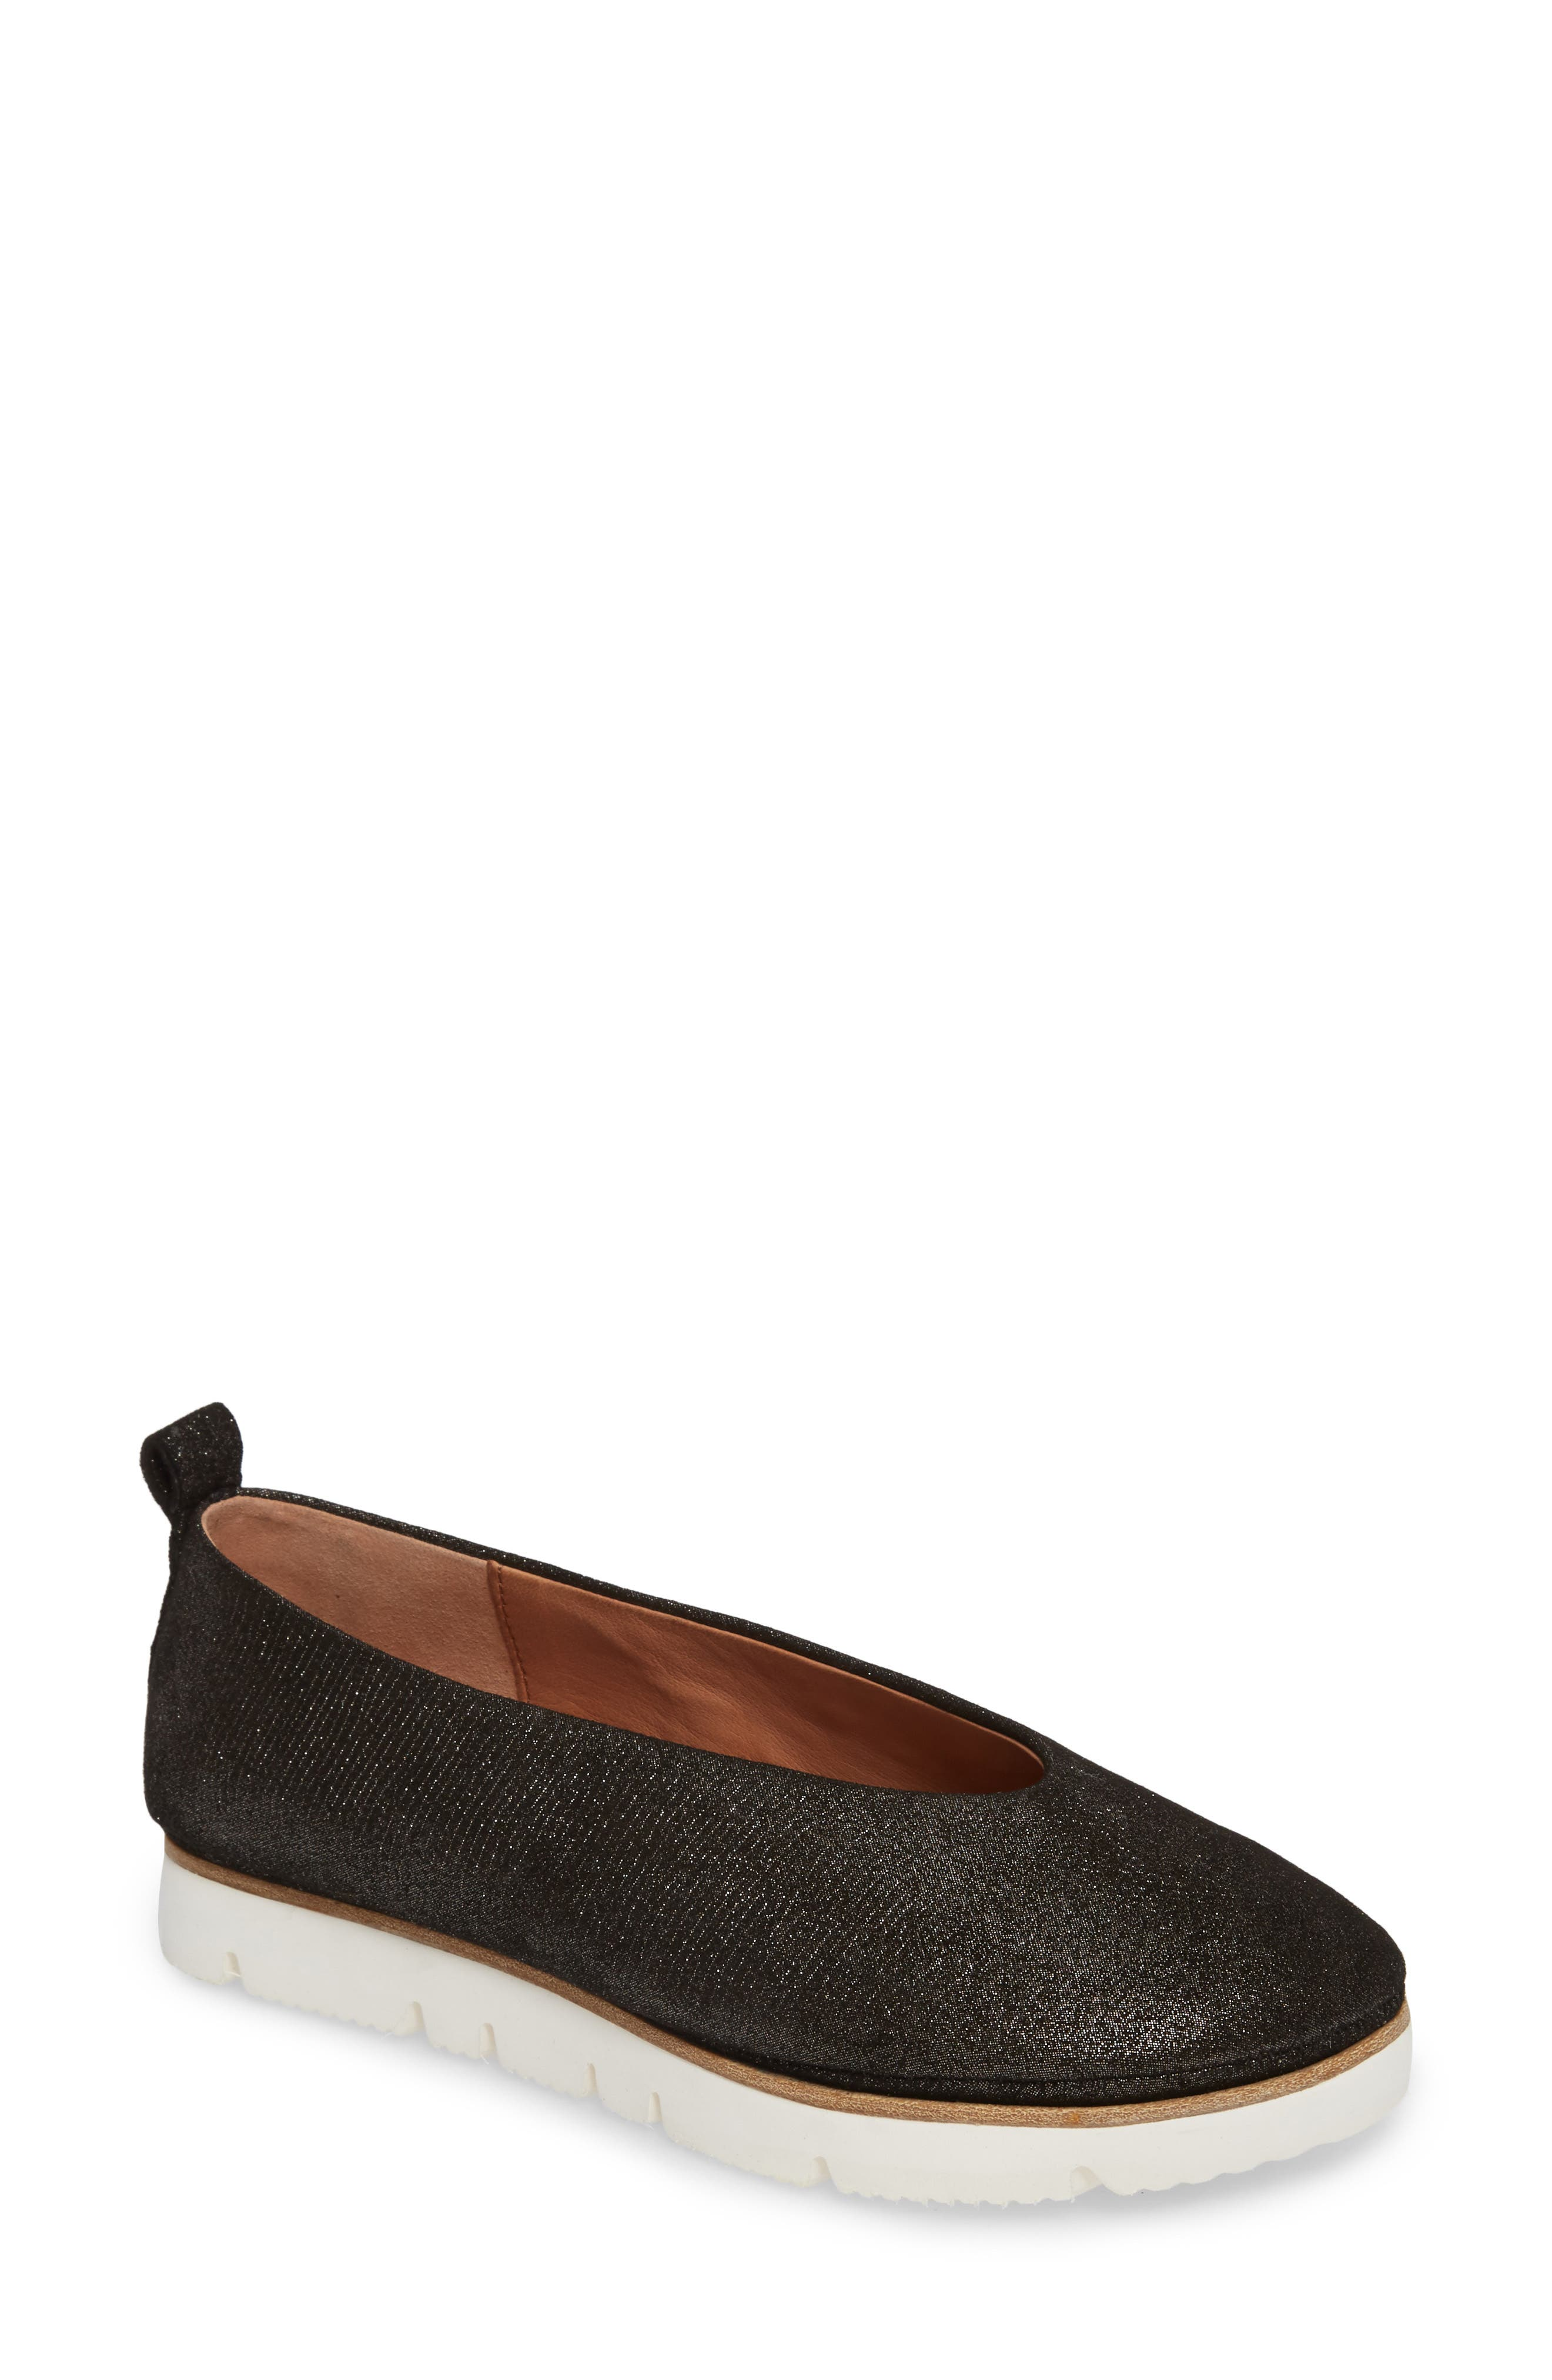 GENTLE SOULS BY KENNETH COLE, Demi Flat, Main thumbnail 1, color, BLACK EMBOSSED LEATHER